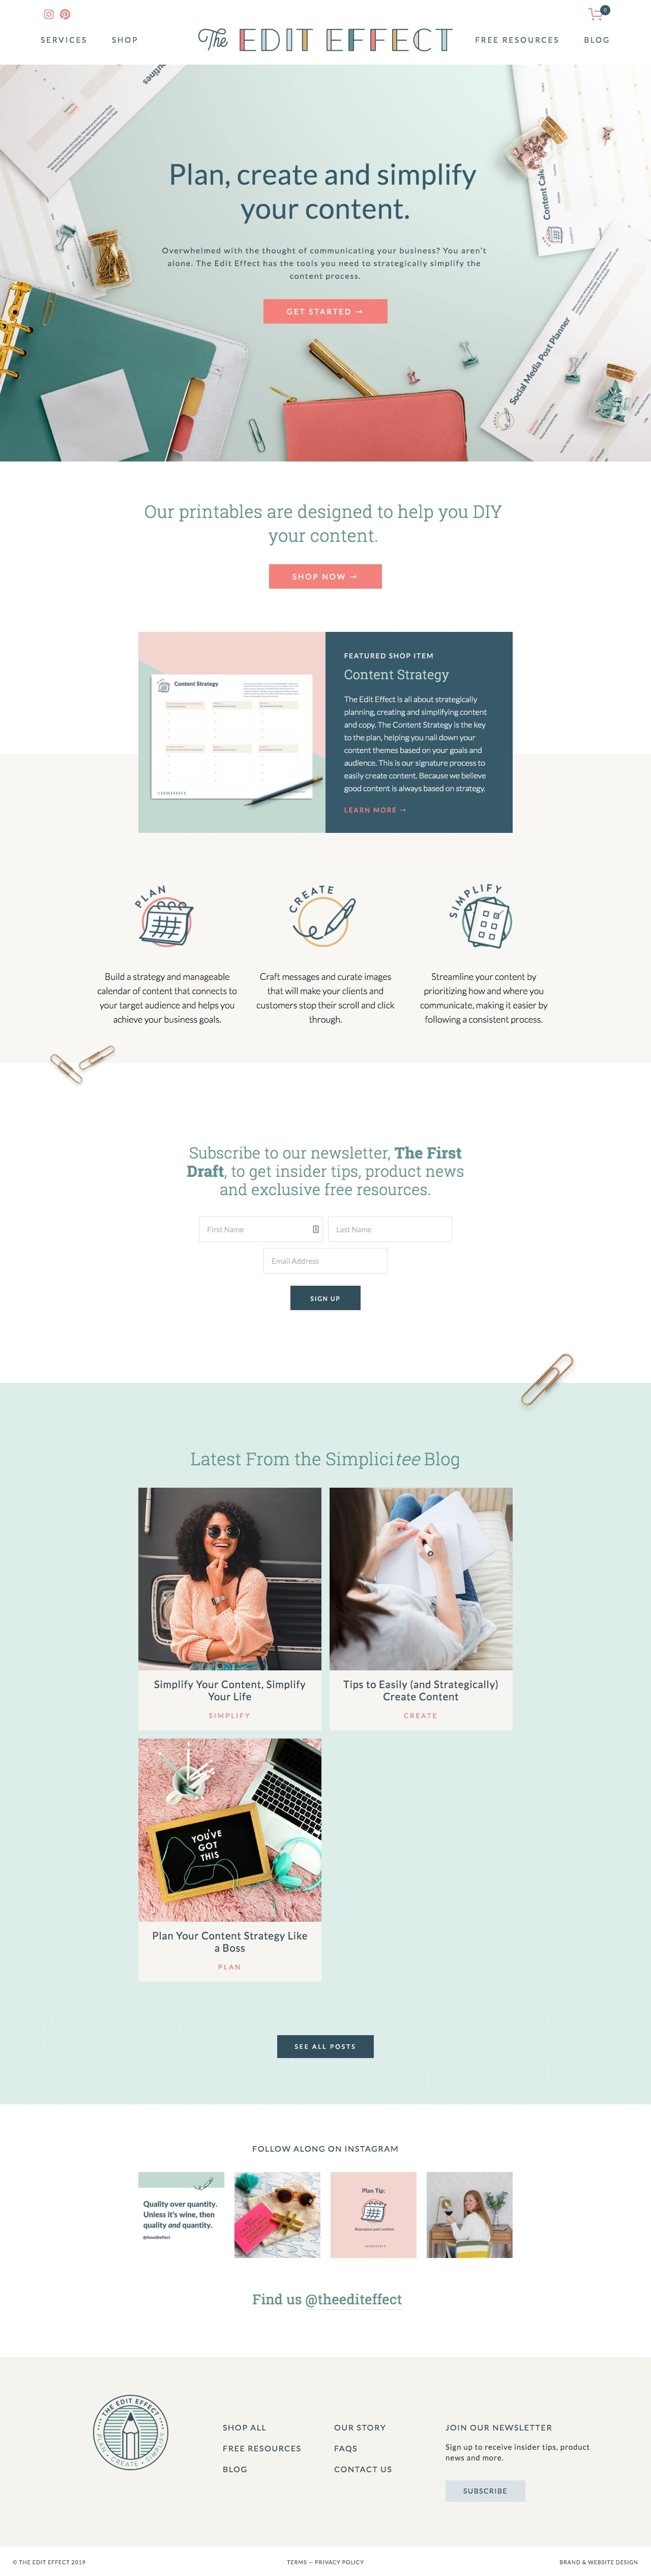 the-edit-effect-best-example-of-squarespace-website-for-marketing-and-content-businesses.jpg